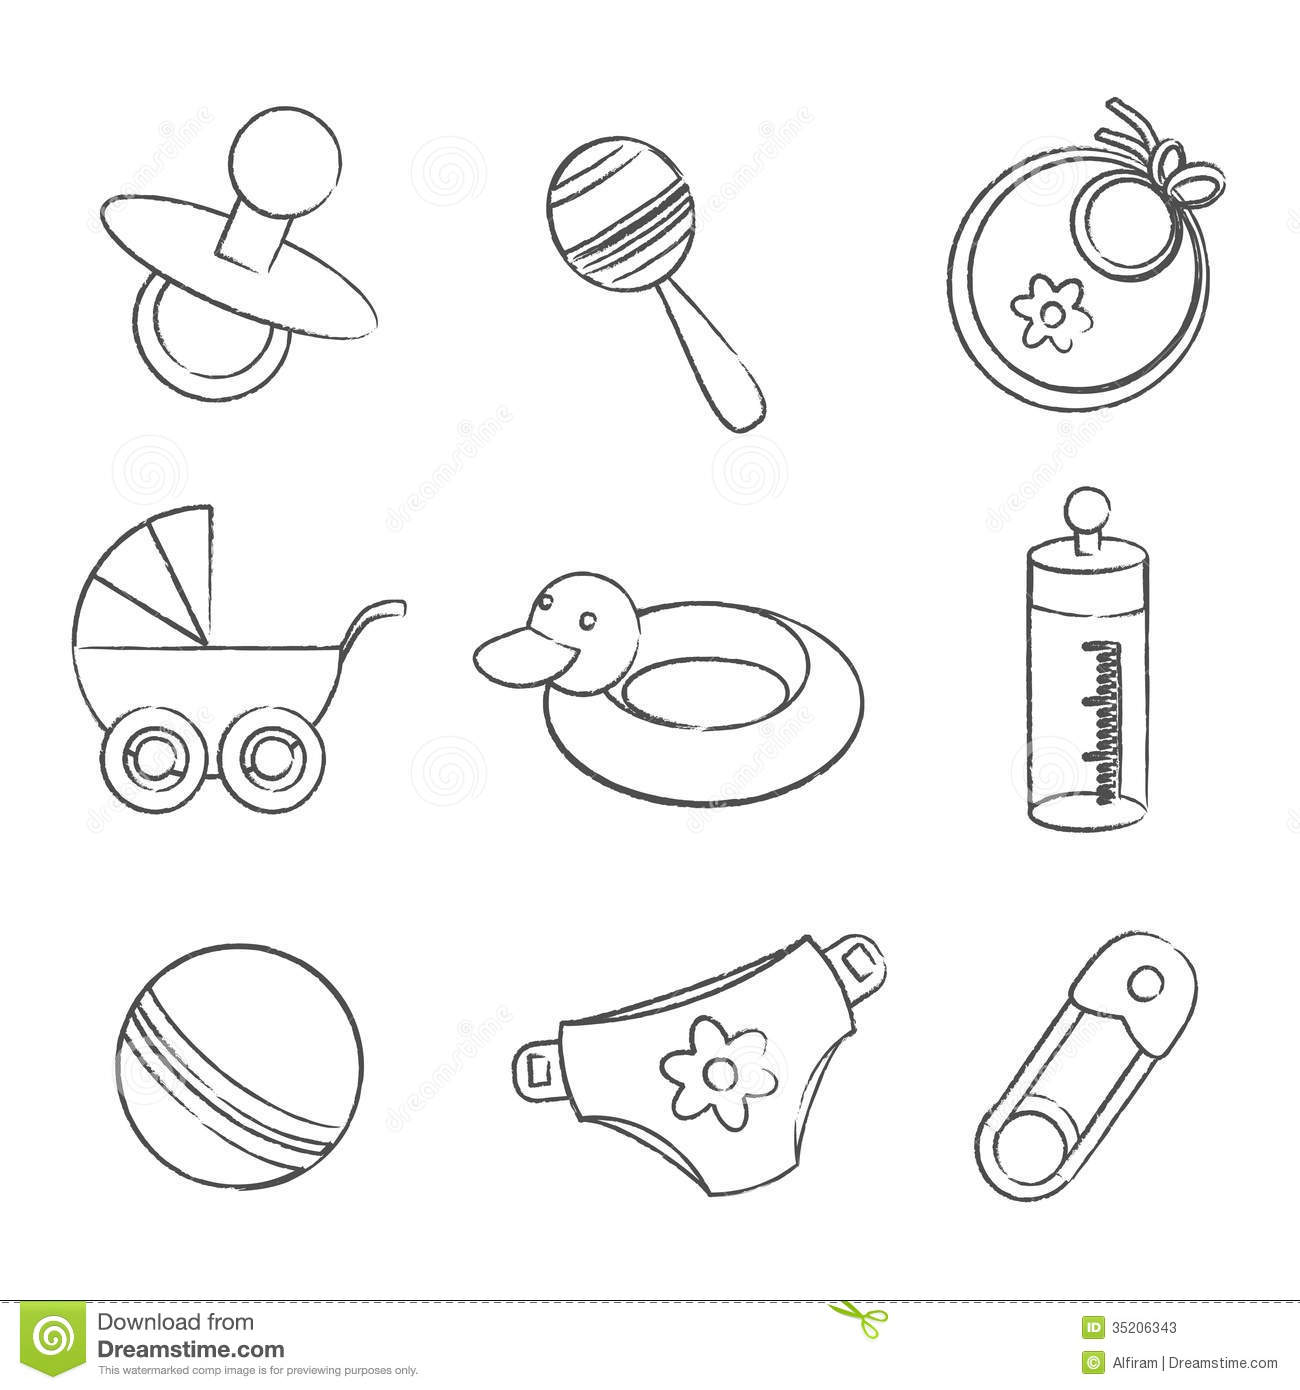 Baby symbols clip art images symbol and sign ideas set of black and white baby symbols stock vector illustration of set of black and white buycottarizona Gallery